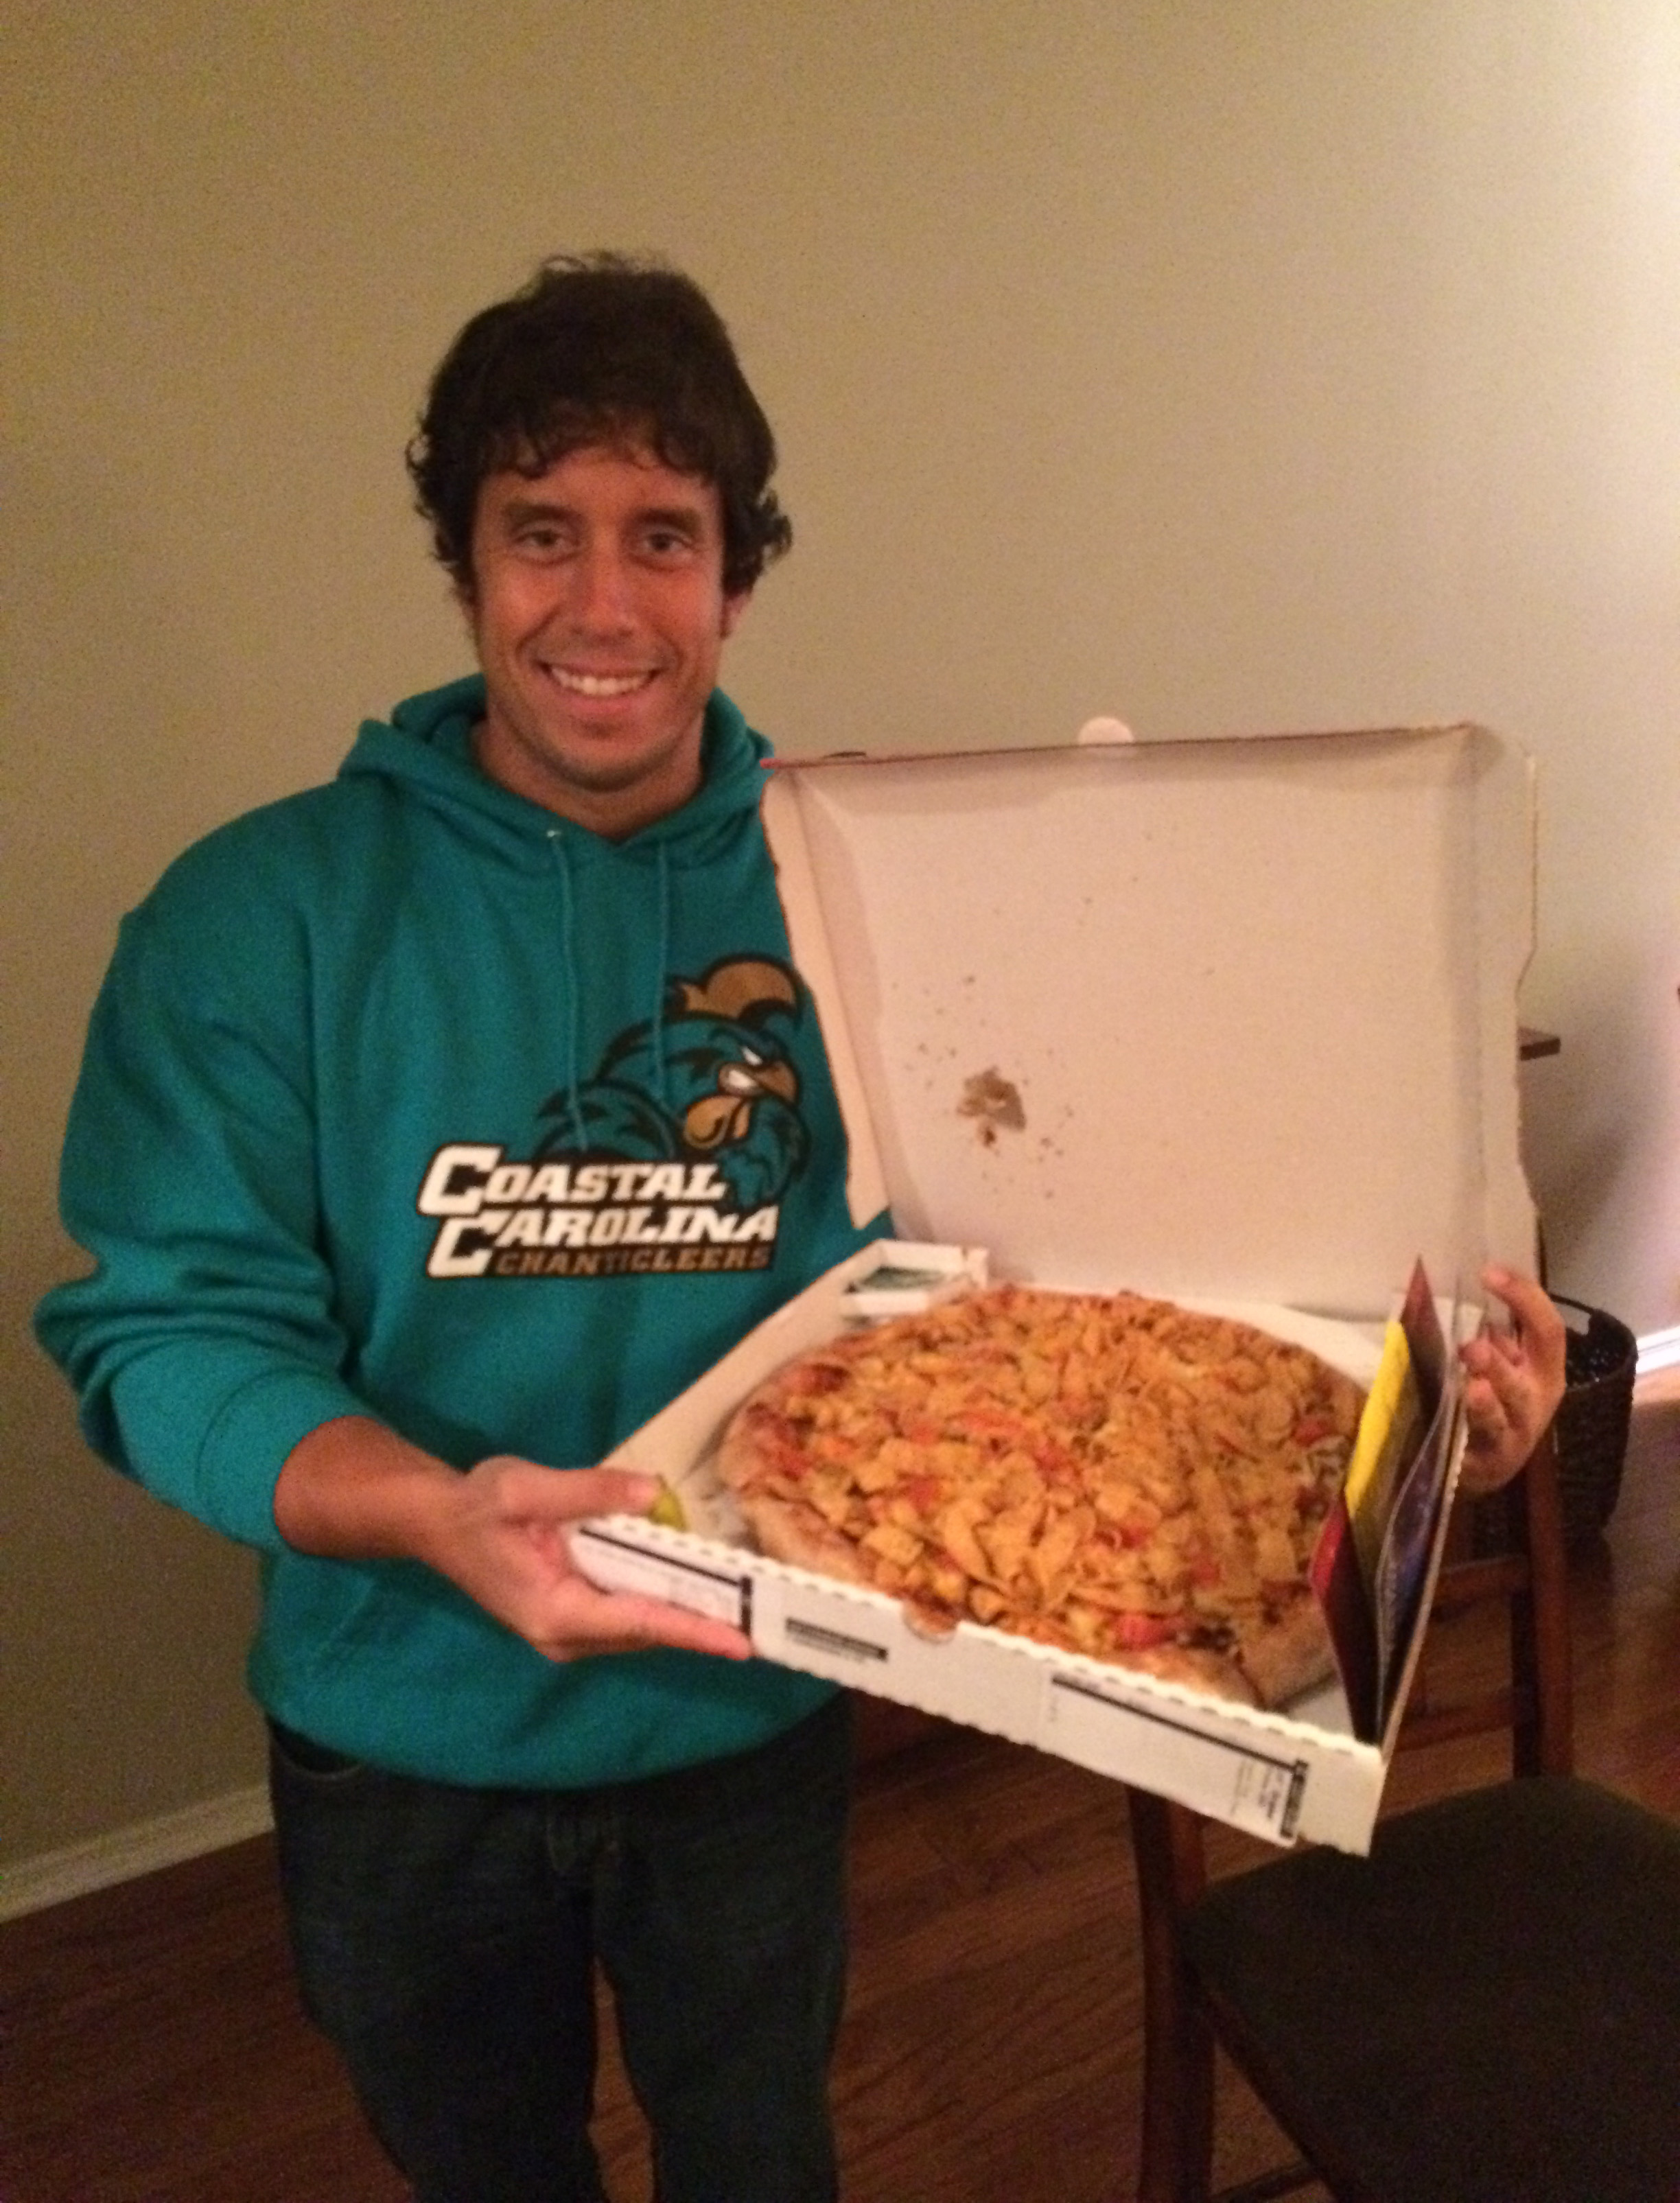 Me holding the Fritos Chili Pizza from Papa John's.